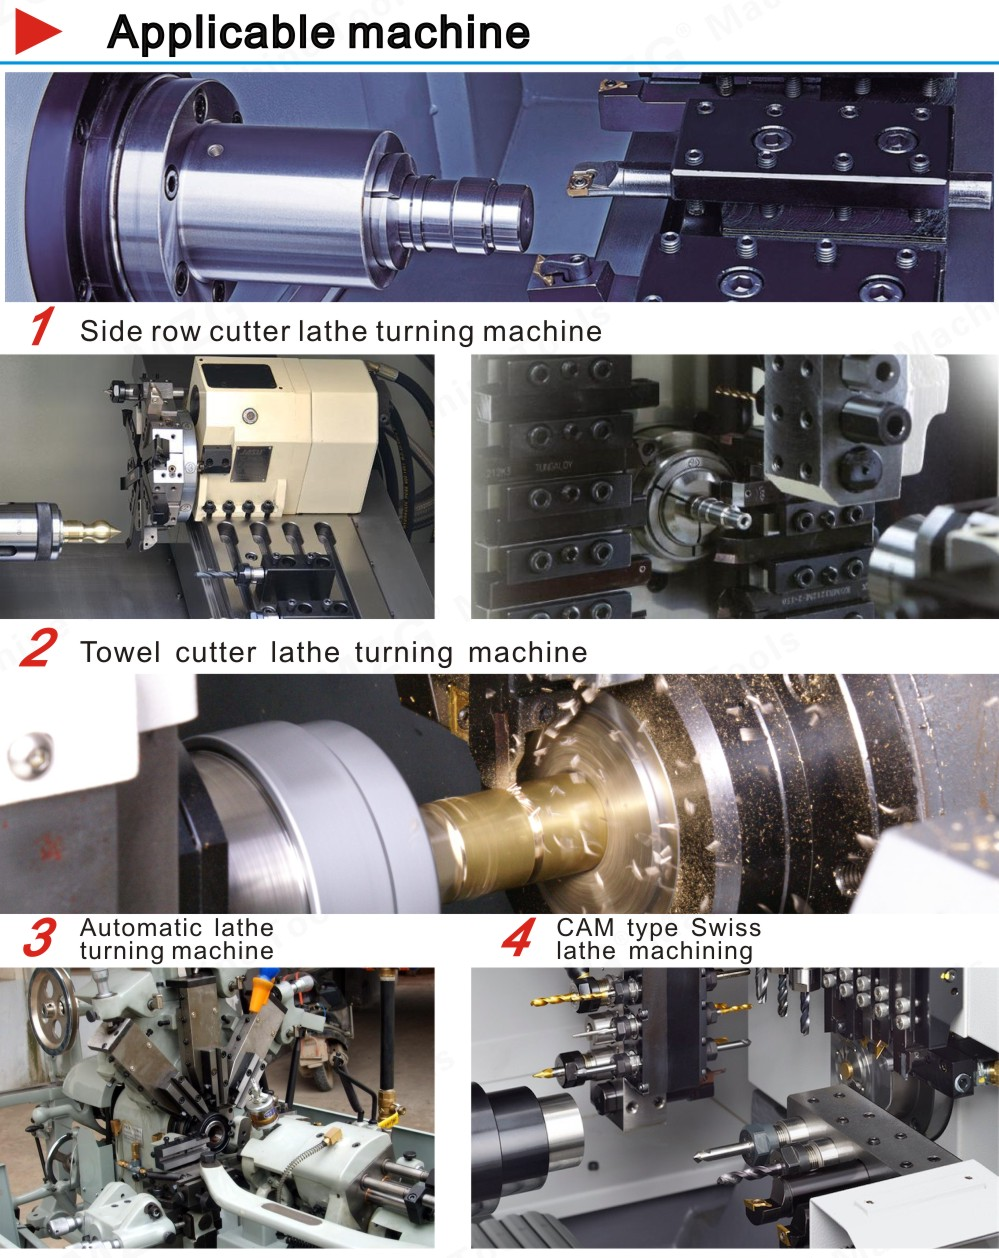 Turning Applicable machine